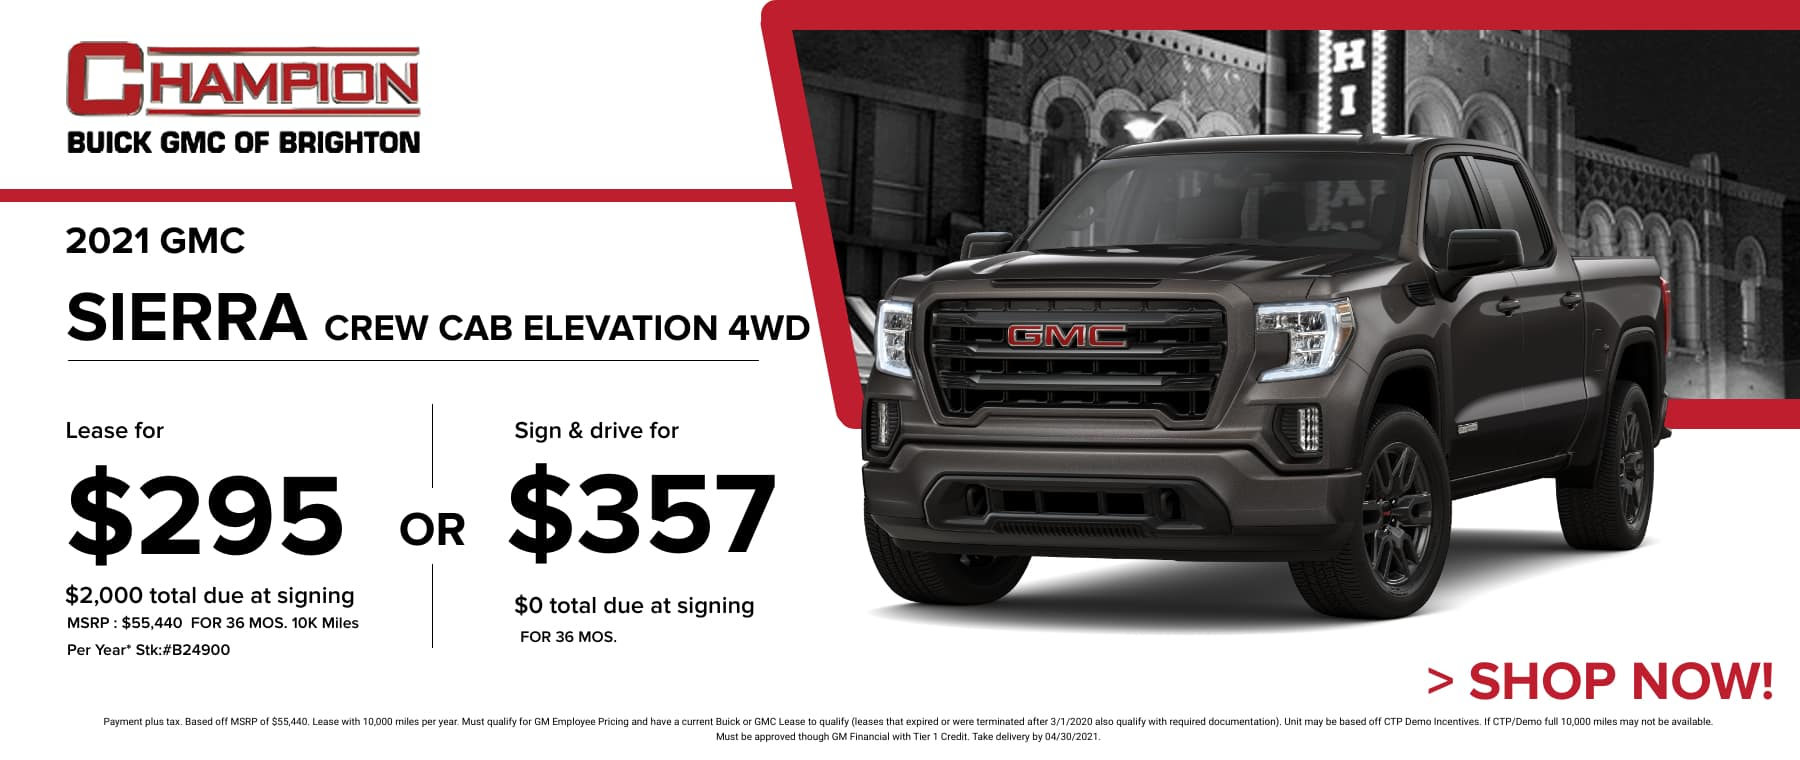 2021 GMC Sierra Crew Cab Elevation 4WD - Lease for just: $395 per month for 36 months $2,000 total due at signing. Sign & Drive for $445 per month for 36 months. *Stock #B24900. MSRP: $55,440 Payment plus tax. Based off MSRP of $55,440. Lease with 10,000 miles per year. Must qualify for GM Employee Pricing and have a current Buick or GMC Lease to qualify (leases that expired or were terminated after 3/1/2020 also qualify with required documentation). Unit may be based off CTP Demo Incentives. If CTP/Demo full 10,000 miles may not be available. Must be approved though GM Financial with Tier 1 Credit. Take delivery by 04/30/2021.